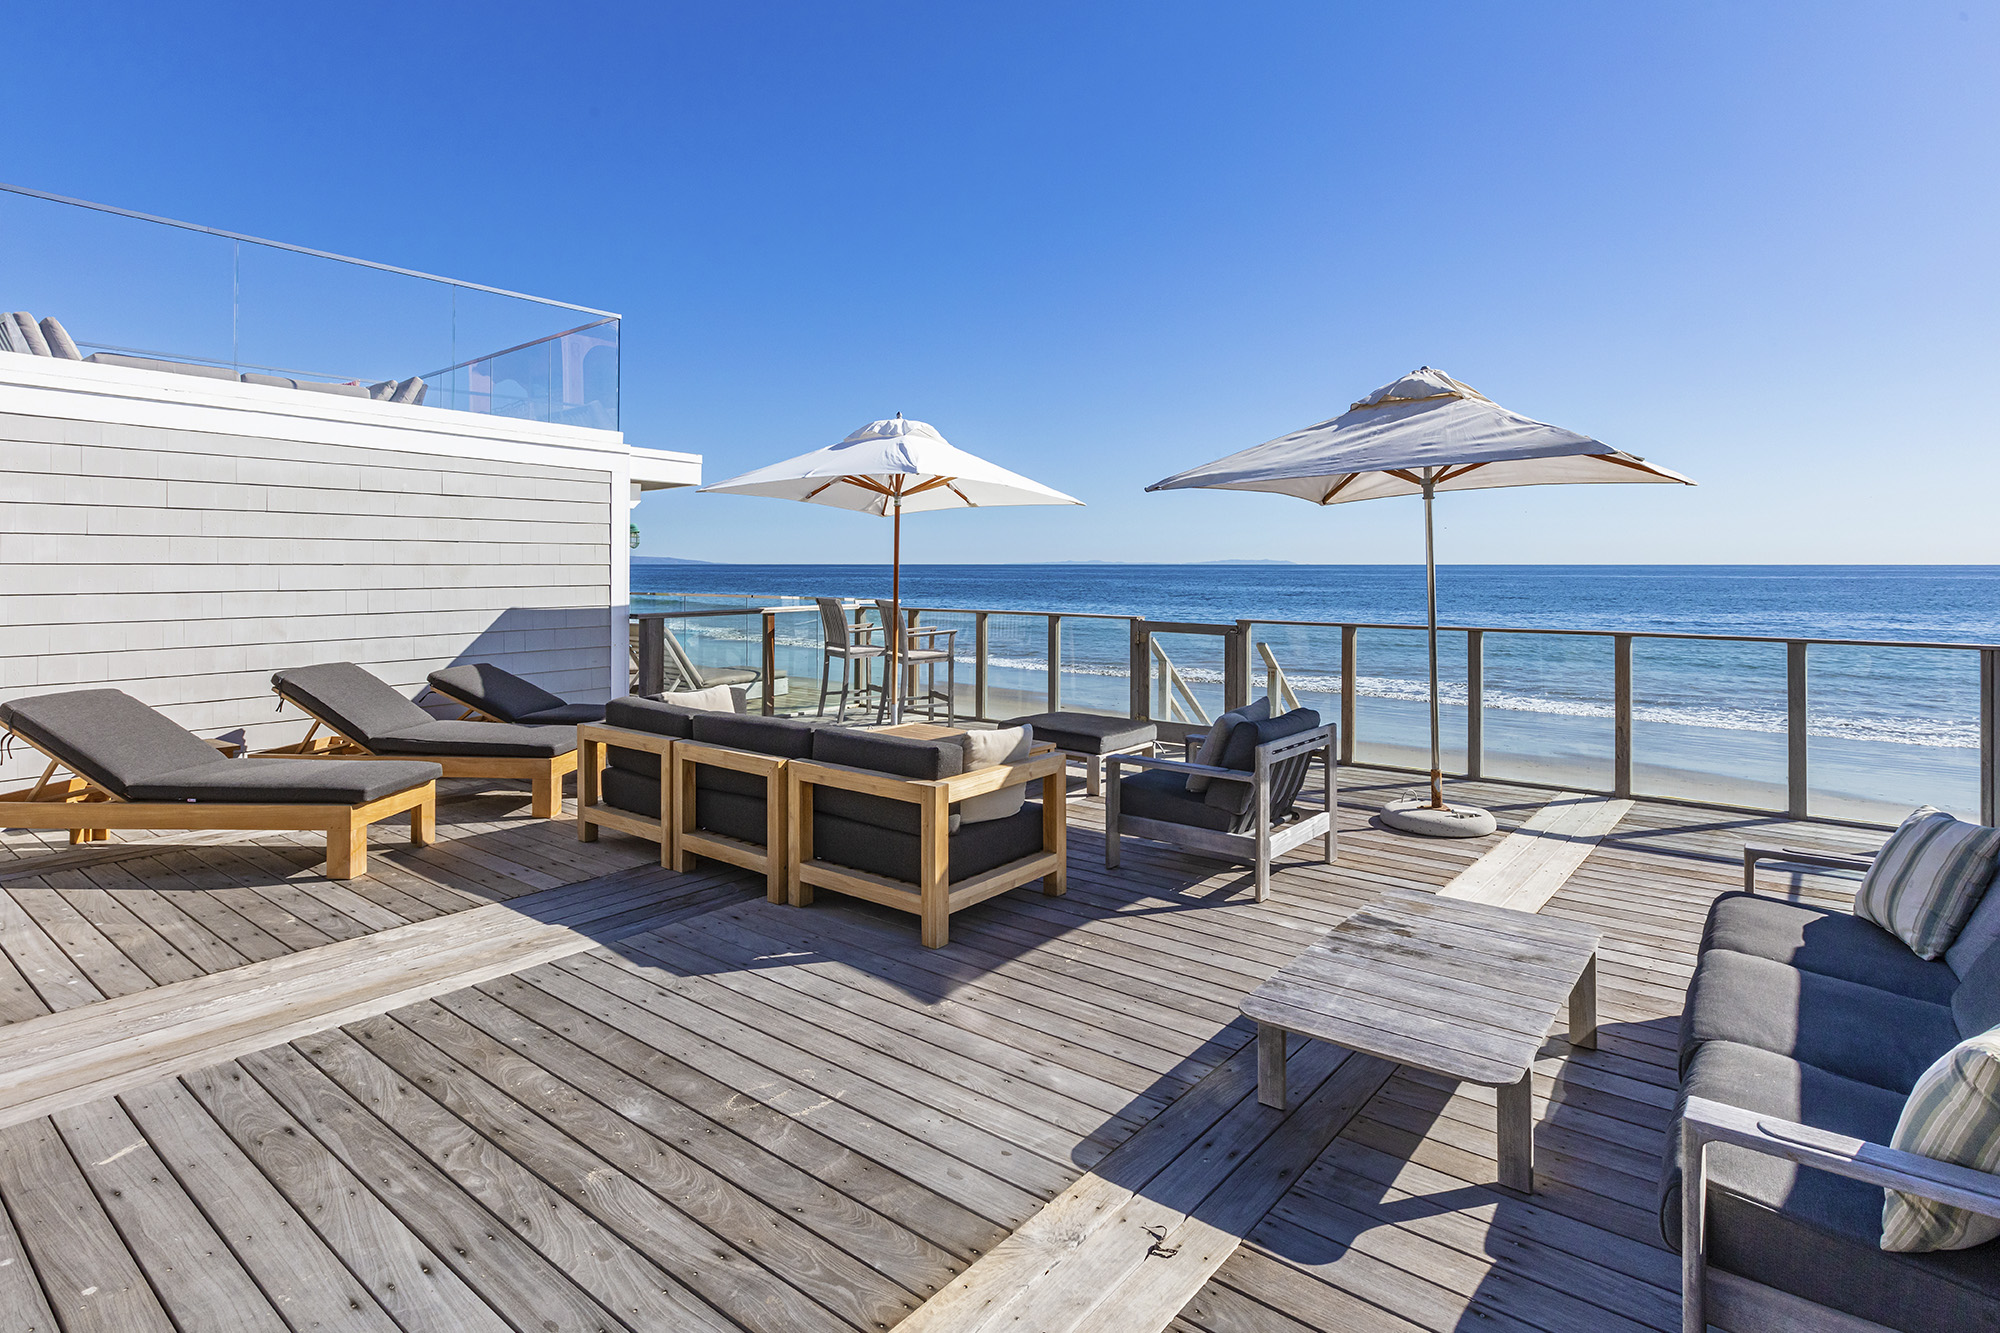 malibu colony deck leading down to the ocean